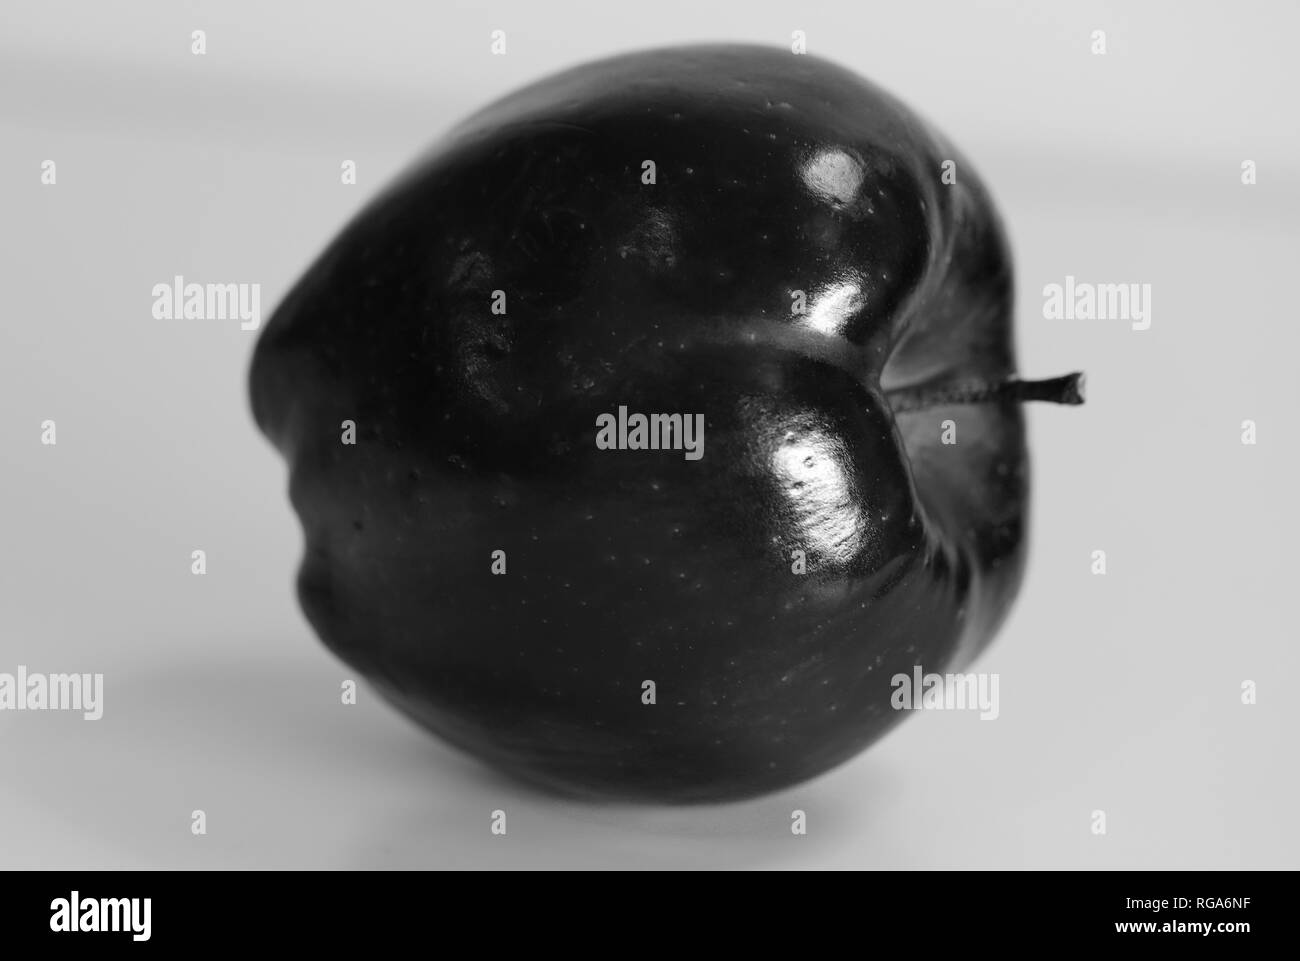 Macro photo of a Red Delicious apple. Beautiful closeup shows the details of this fruit. Black and white photo. - Stock Image